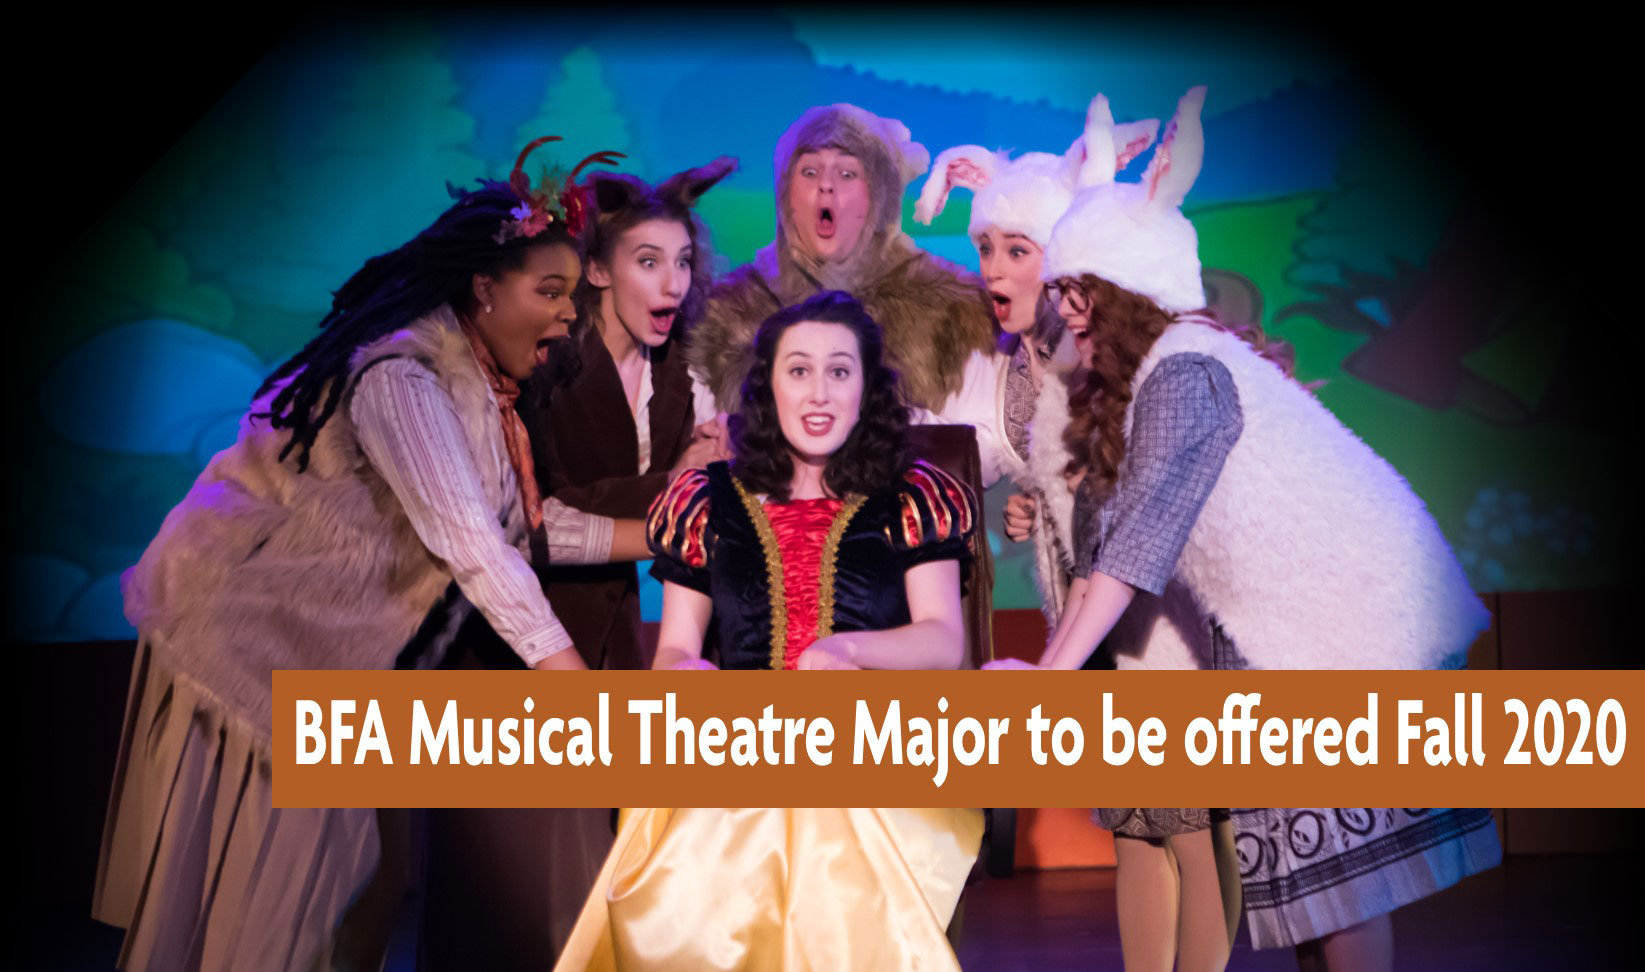 bfa musical theatre major to be offered fall 2020